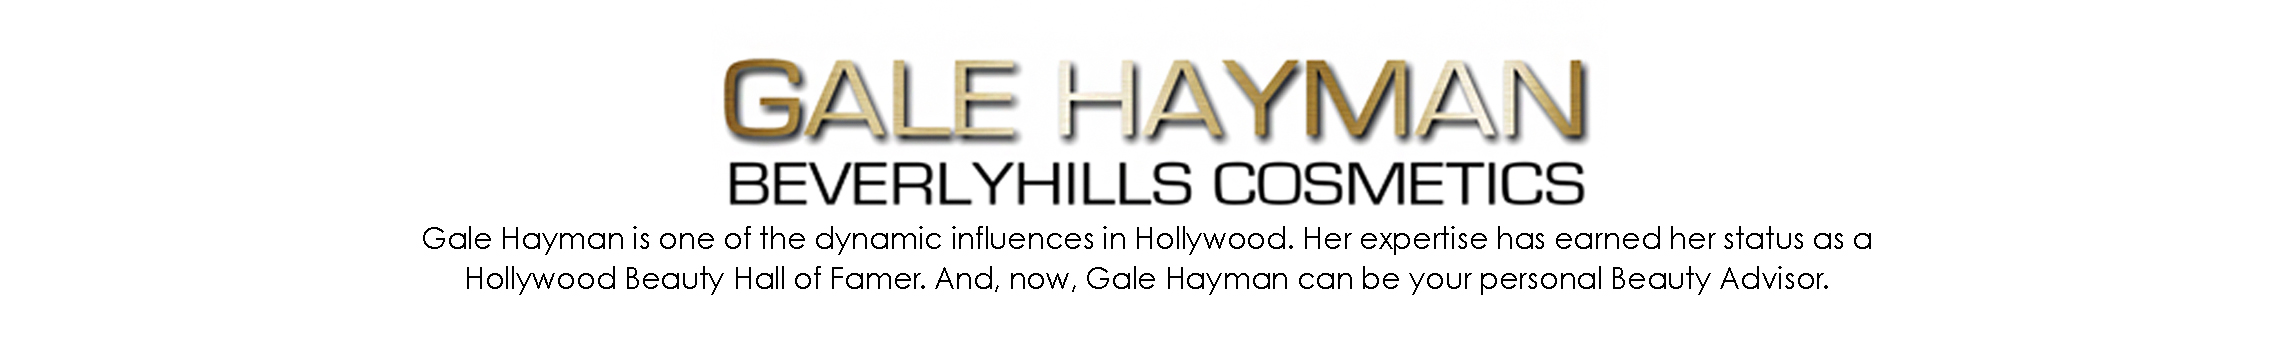 Gale Hayman Into Banner